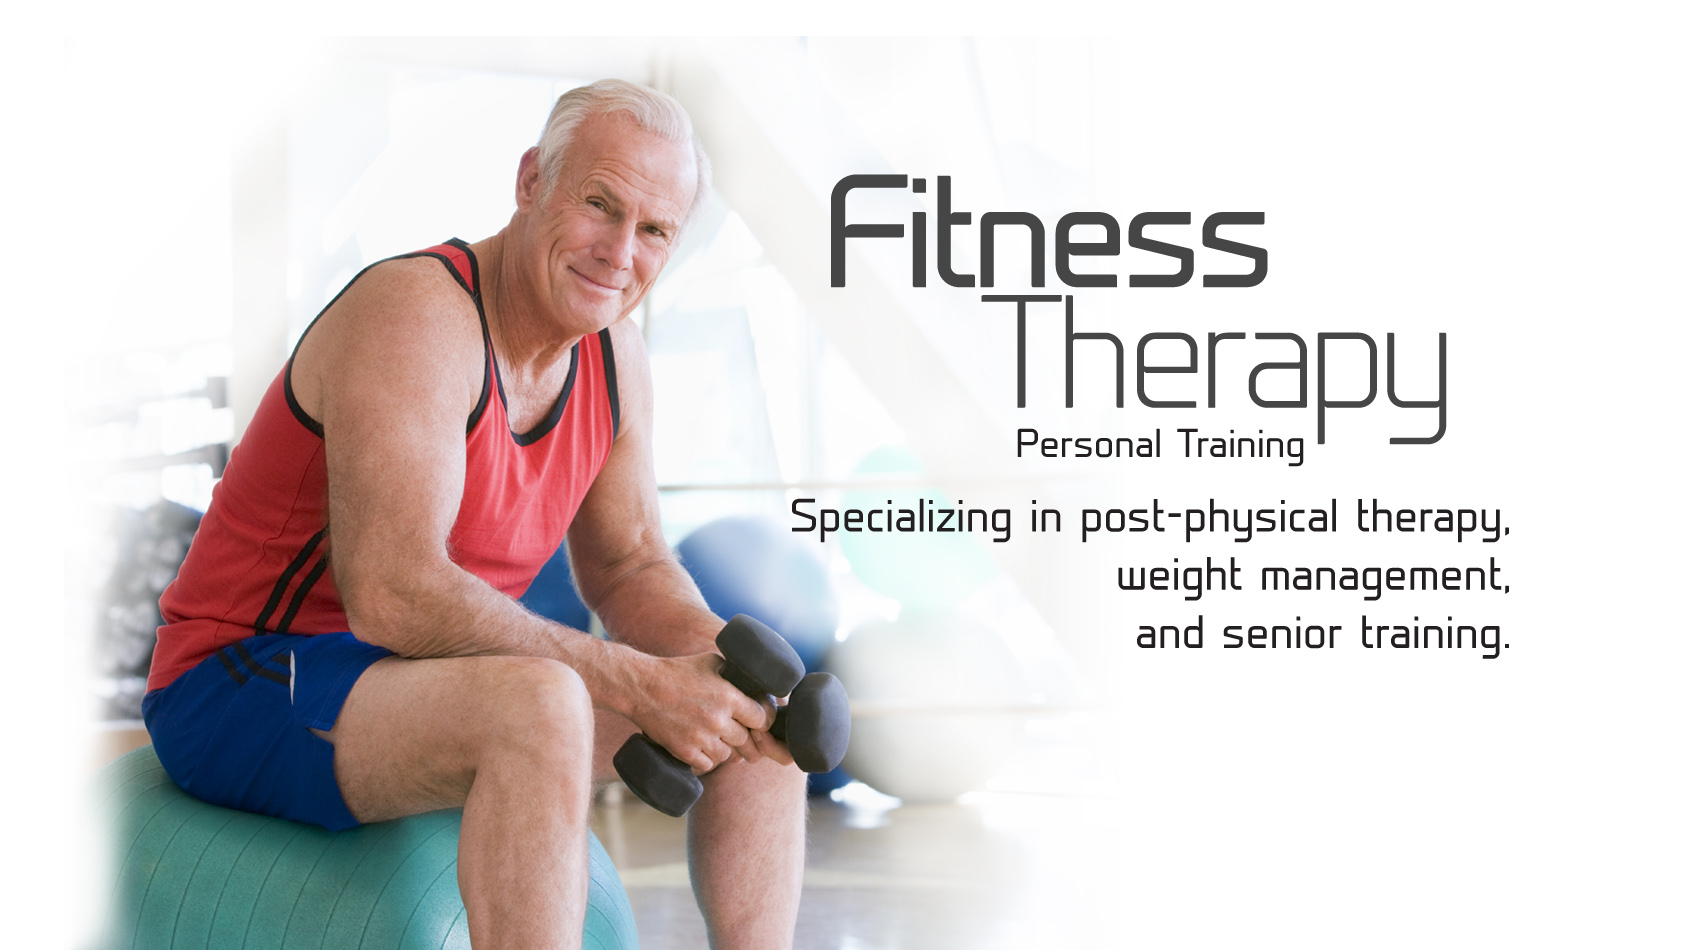 Pinnacle Physical Therapy & Personal Training - Posts